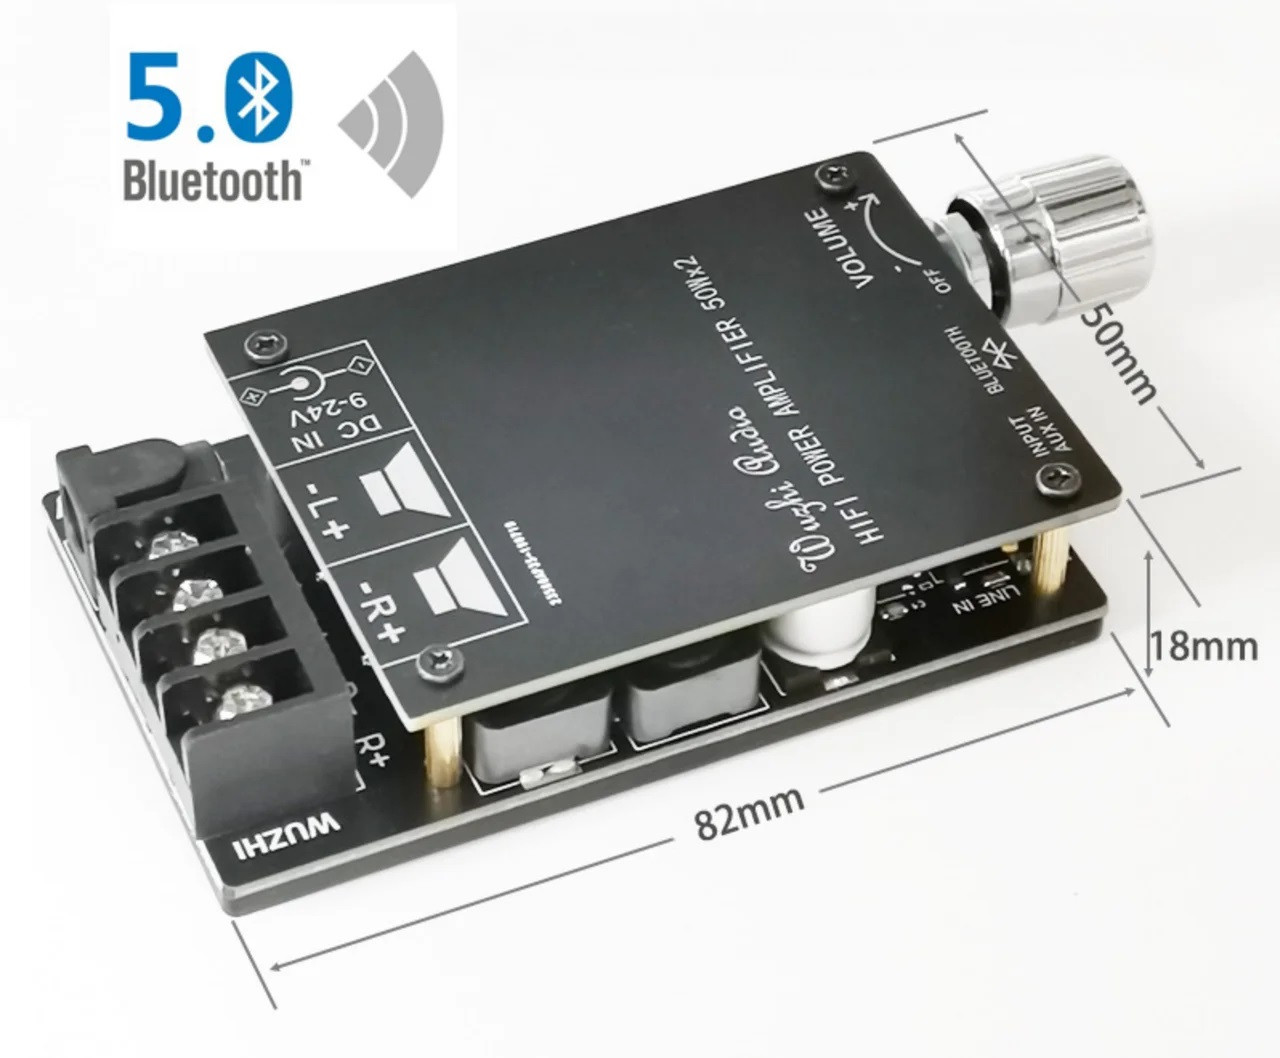 Підсилювач TPA3116 2.0, 5-27В, 2х50Вт, Bluetooth 5.0, AUX, ZK-502C